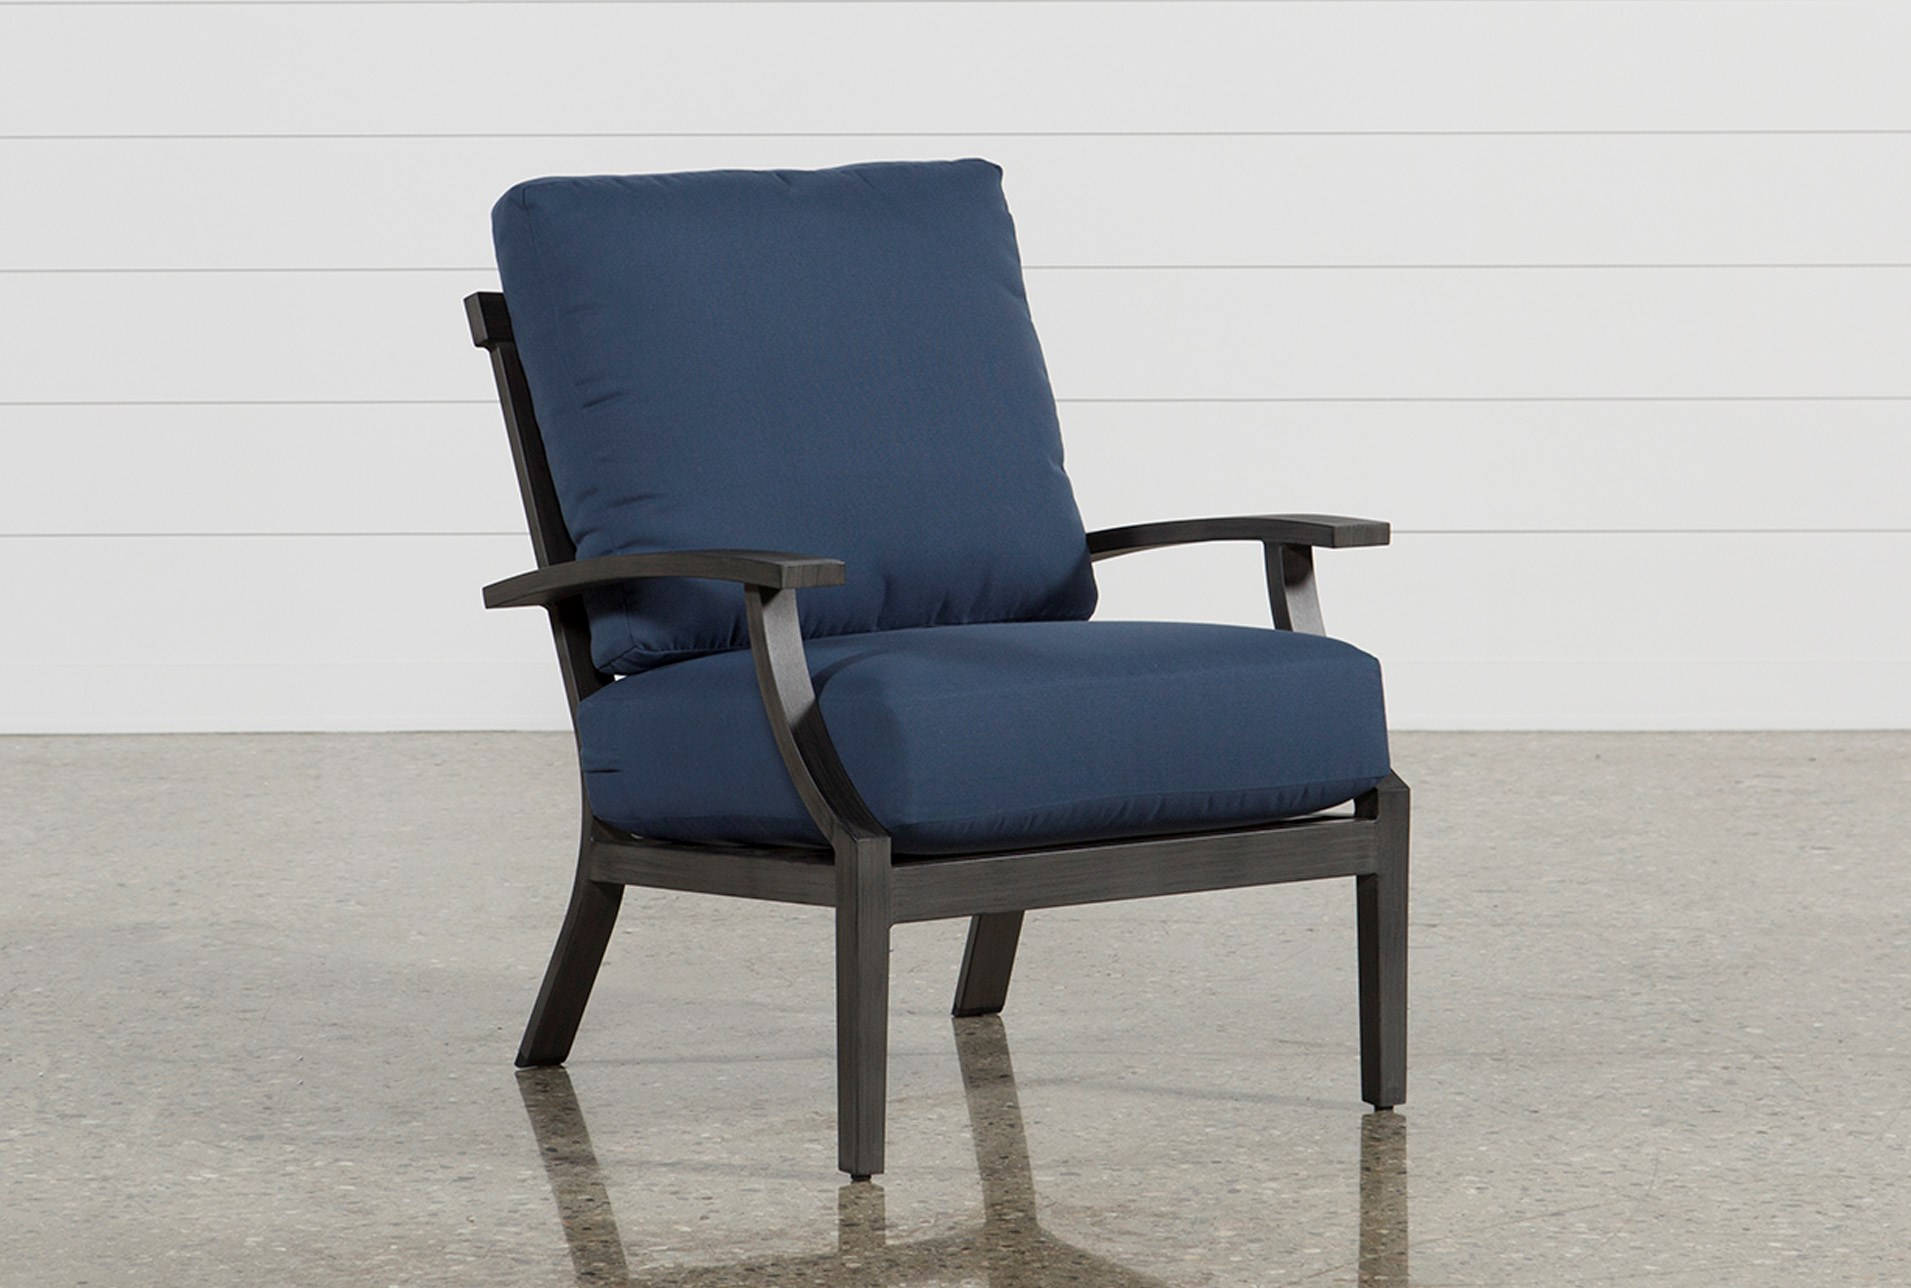 Outdoor martinique navy lounge chair qty 1 has been successfully added to your cart